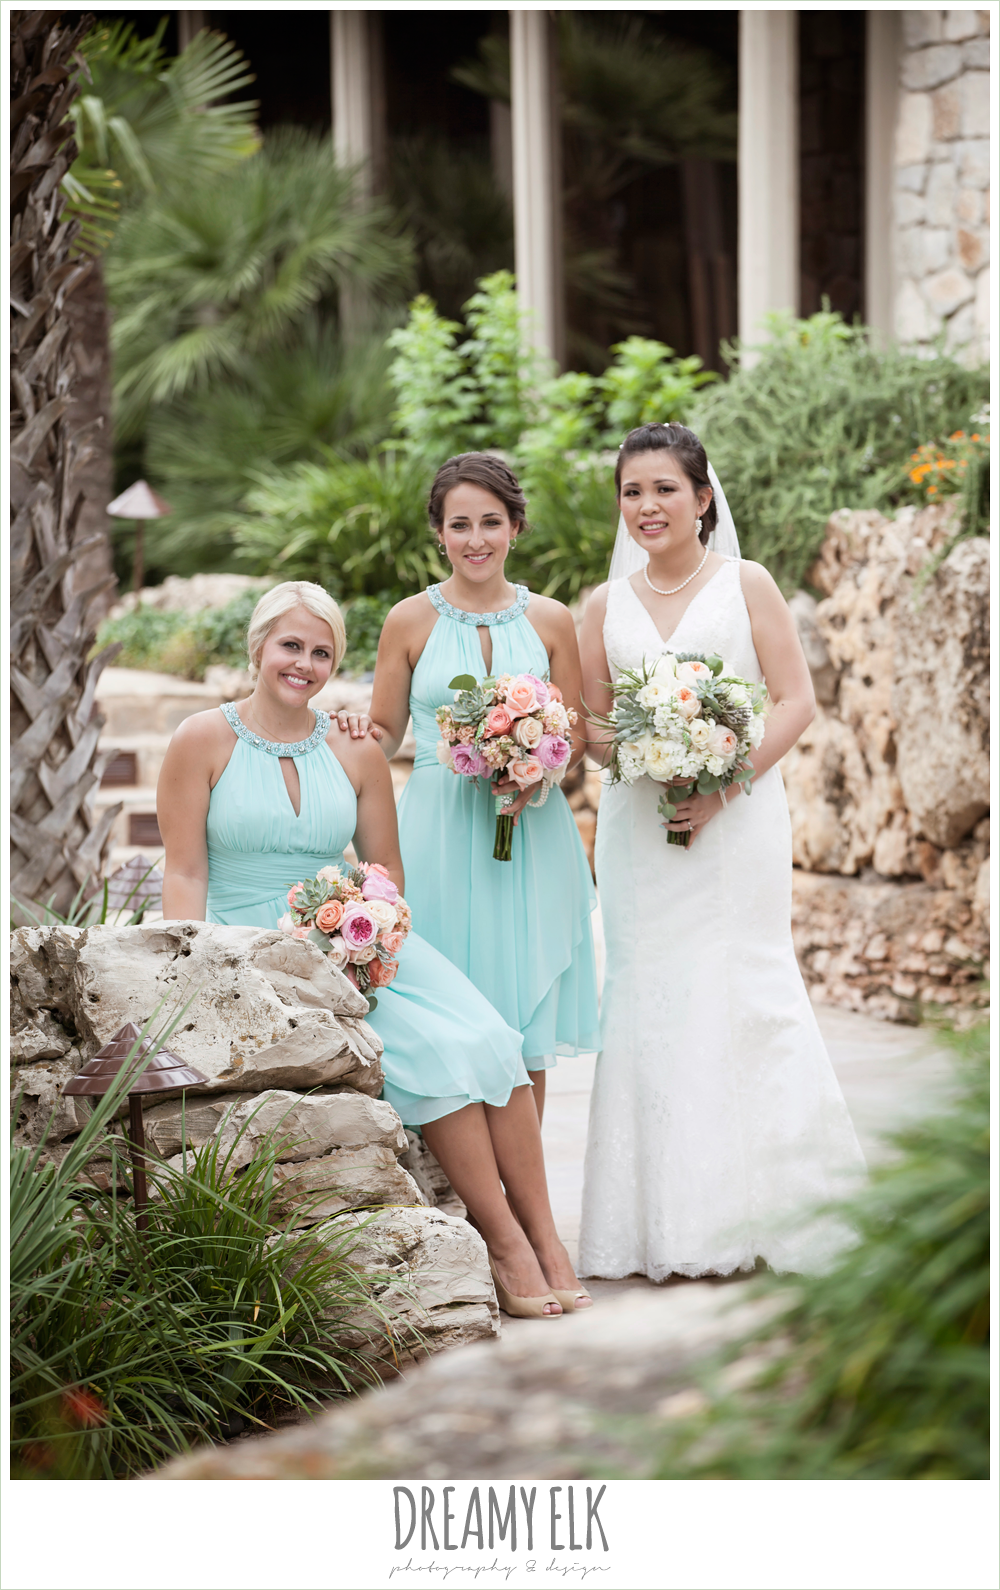 bride and bridesmaids, lace two shouldered wedding dress, aqua bridesmaid dress, nautical theme wedding, horseshoe bay resort, photo {dreamy elk photography and design}